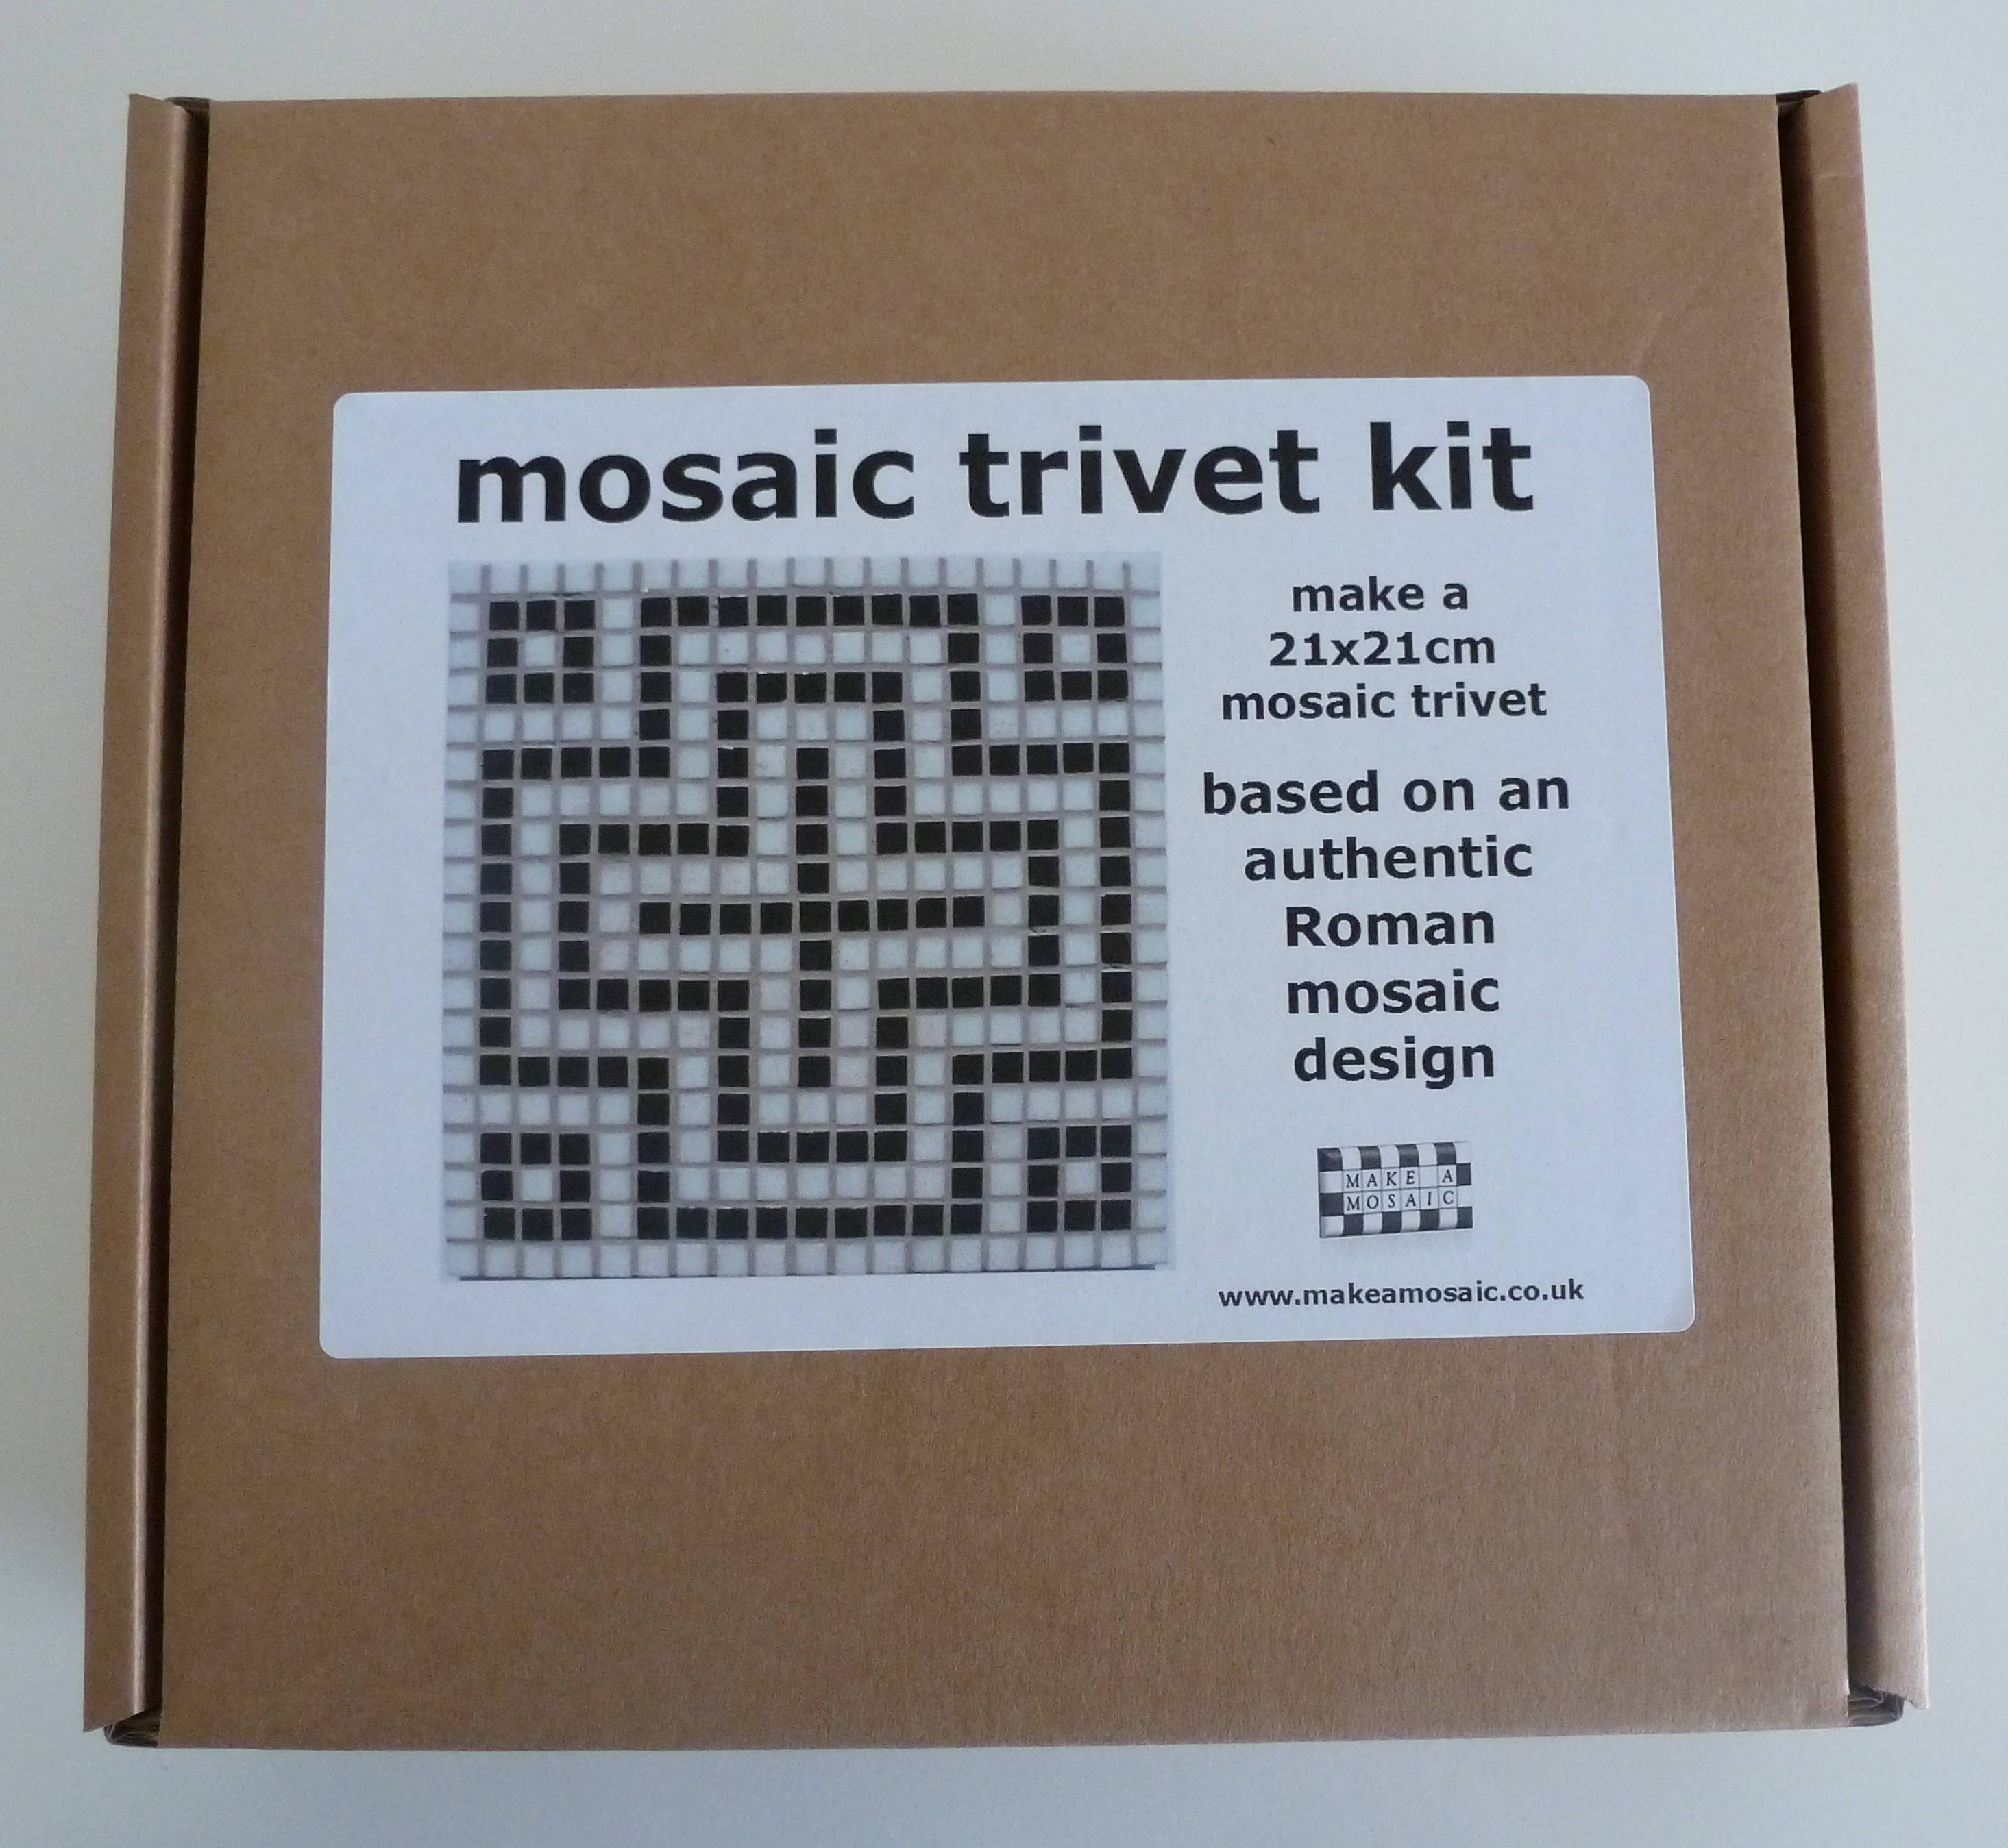 Mosaic Trivet Kits Make A Mosaic